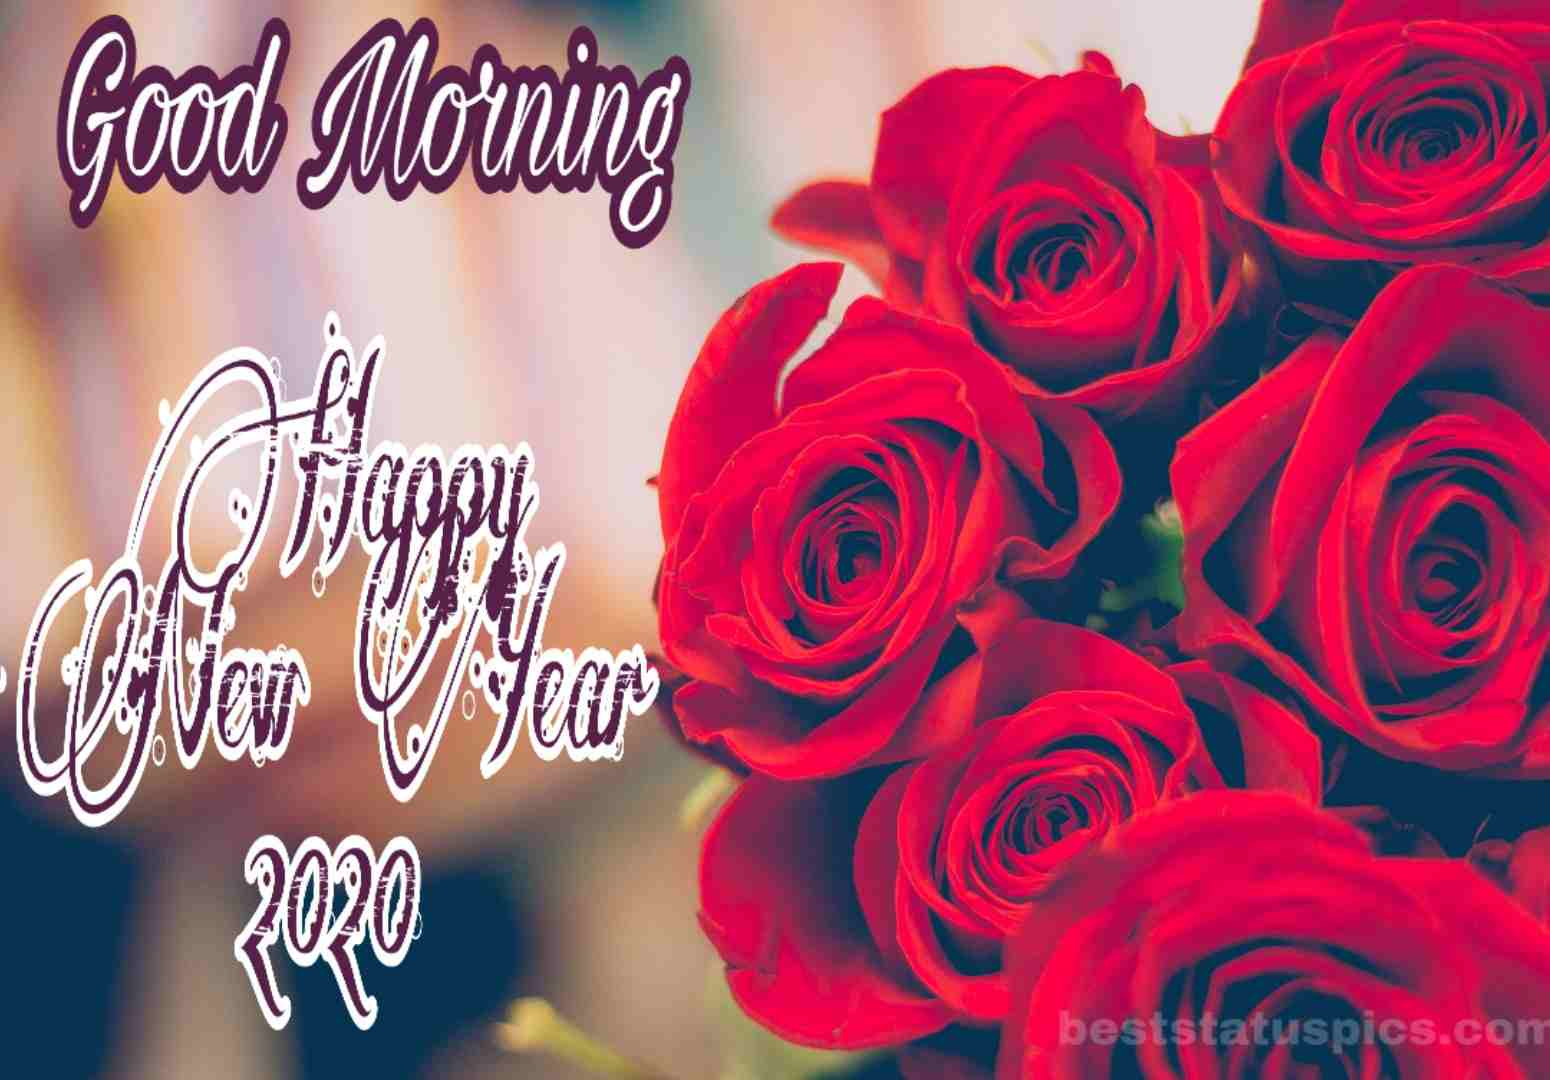 Good Morning Happy New Year 2020 Whatsapp Dp Status Images Best 1550x1080